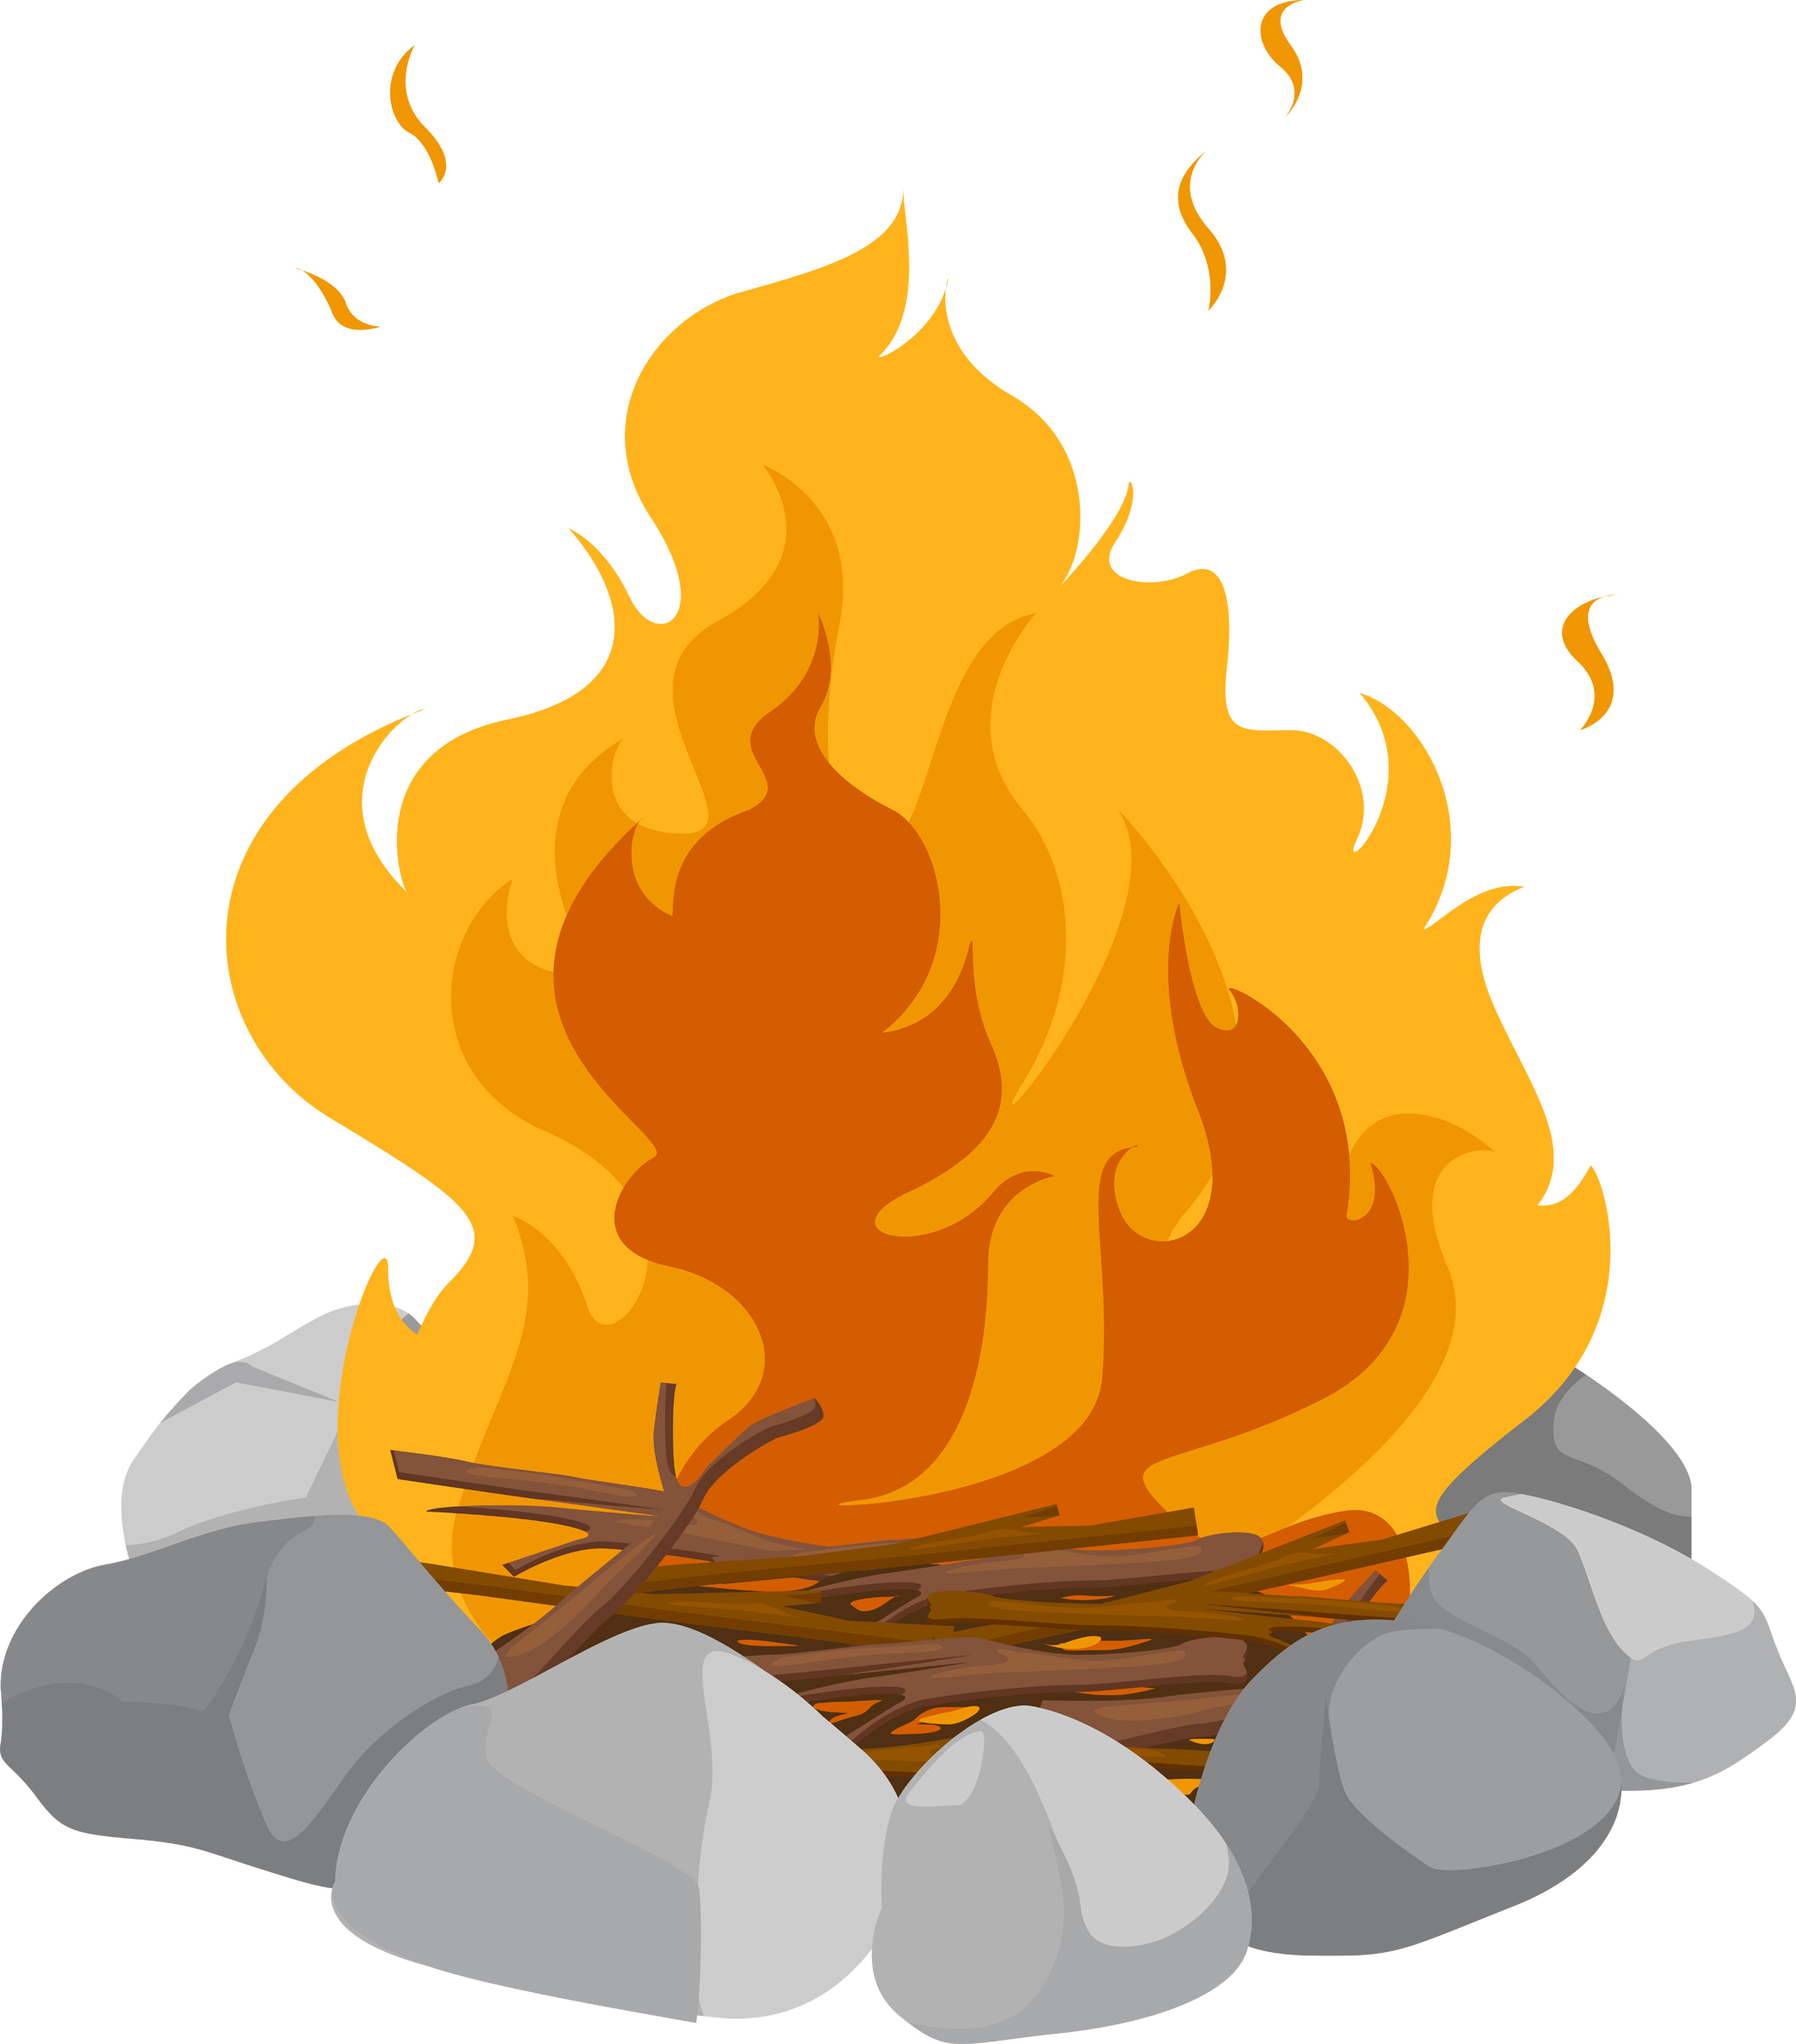 Campfire clipart children's. Tuesday my week at